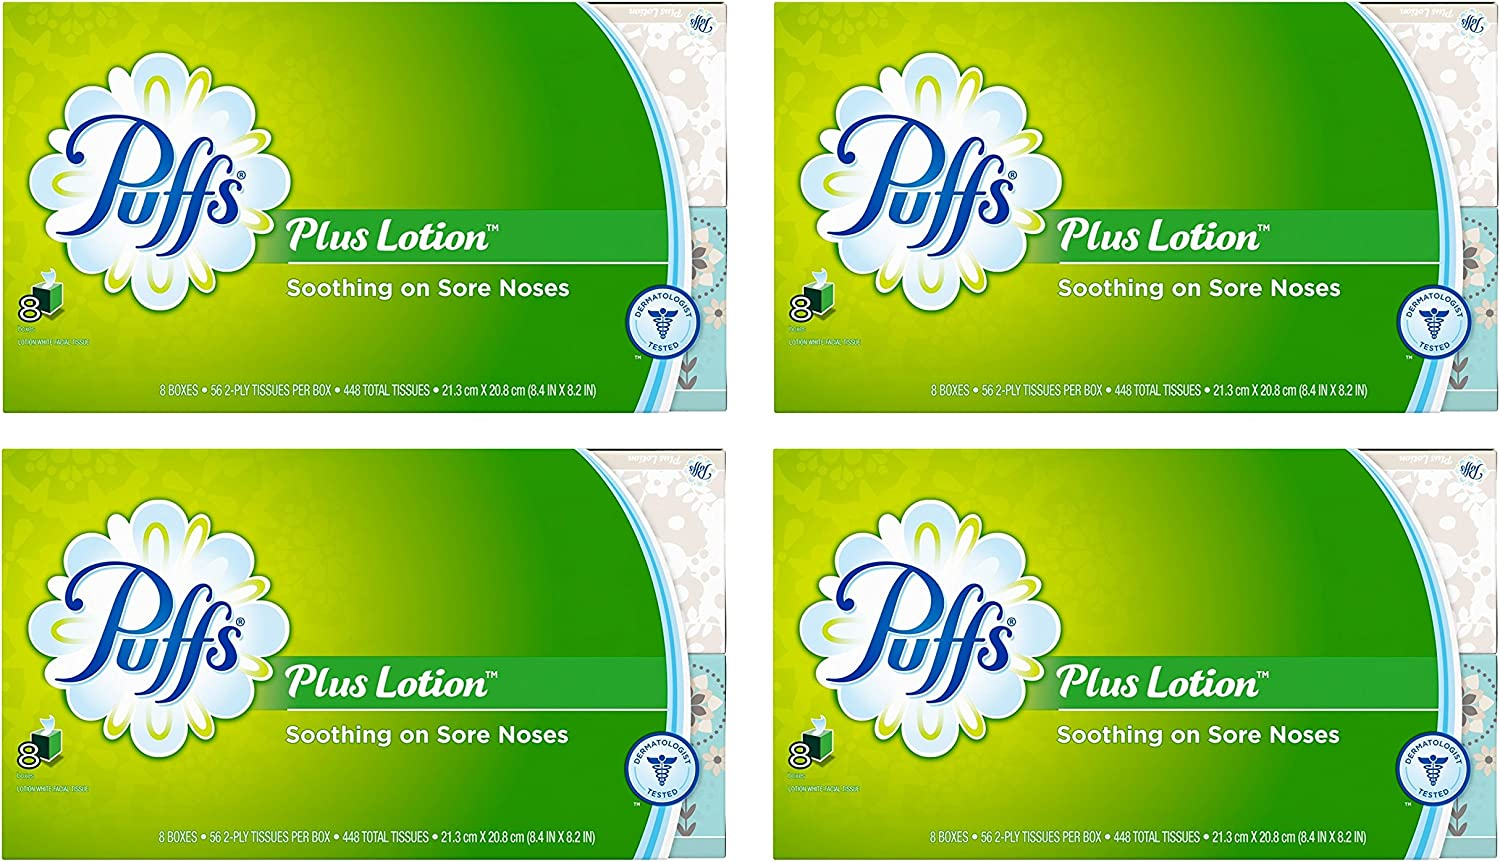 Puffs plus lotion tissues. Do visit these 23 Smart Quarantine Pantry Supplies for Social Isolation I Ordered. #quarantinesupplies #pantryitems #nonperishables